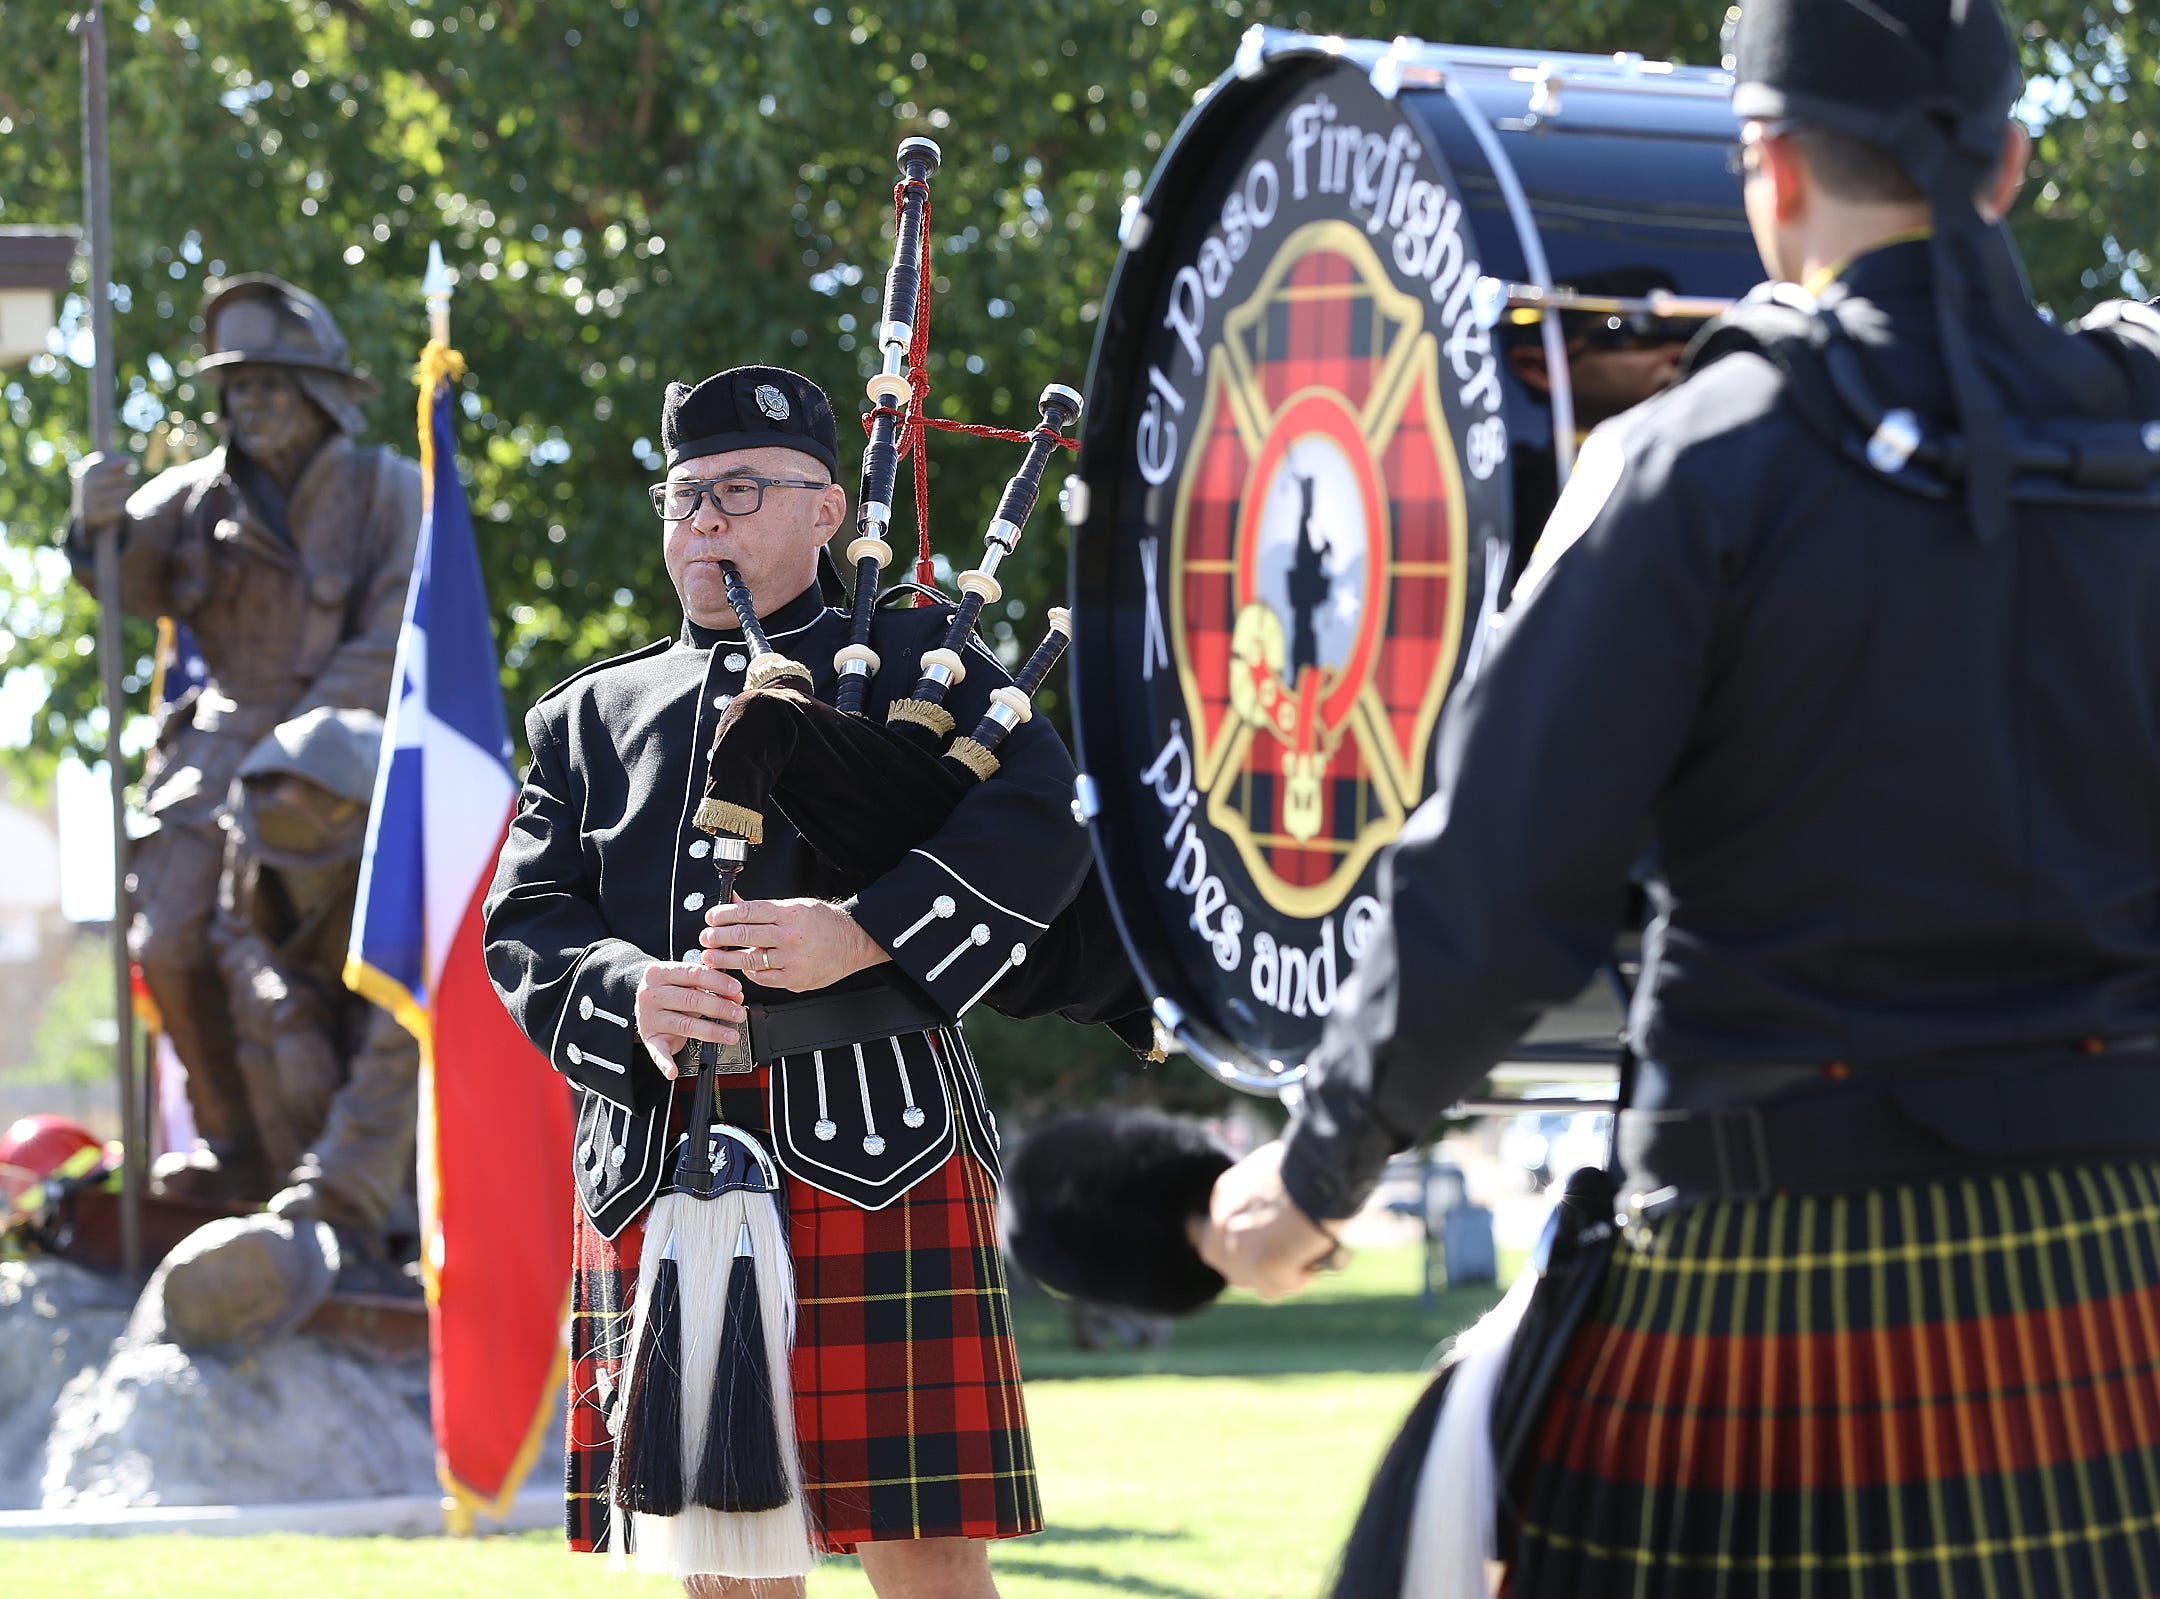 The El Paso Fire Department Pipes and Drums and El Paso Police Department pipes play at the site of the 9/11 memorial at Station 18.